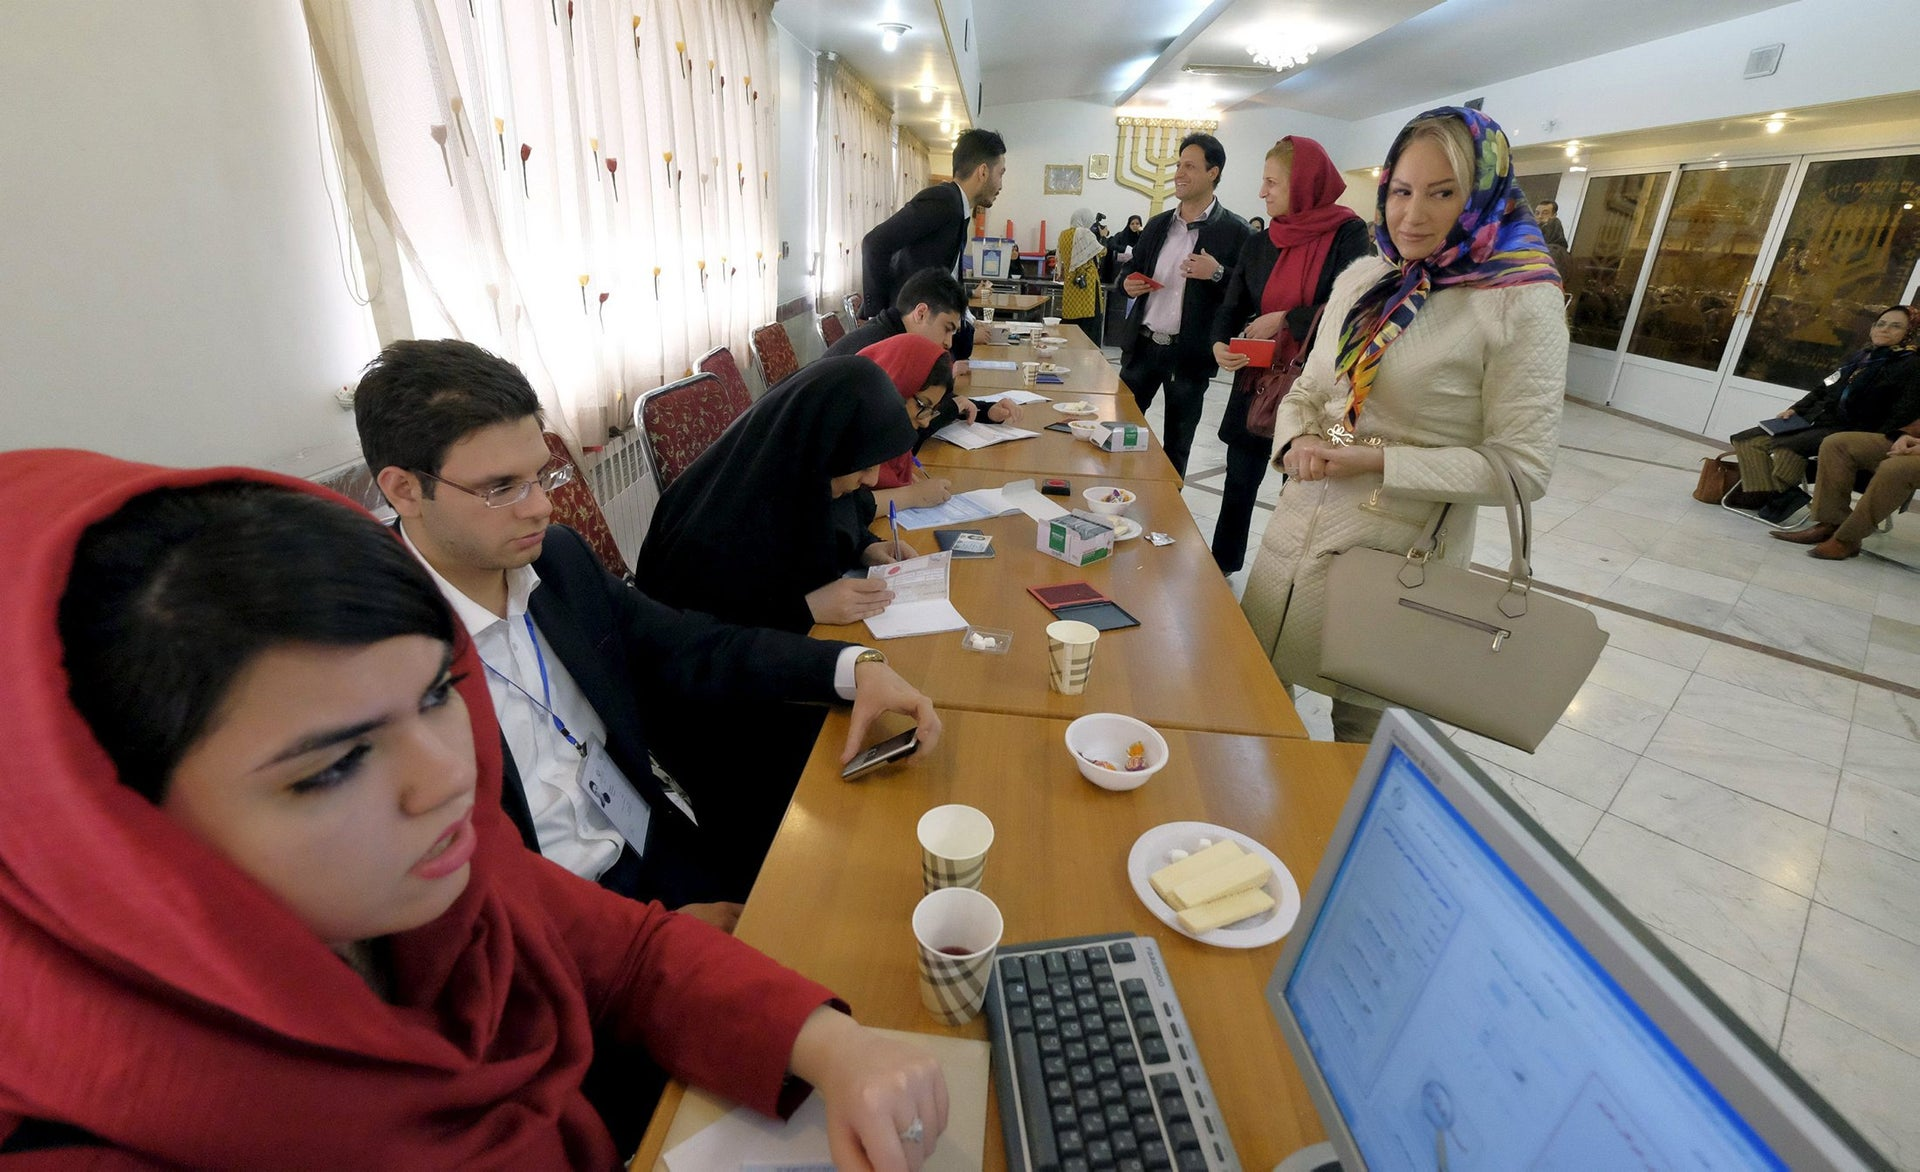 Iranian Jewish voters arrive to cast their ballots at a synagogue, used as a polling station, during elections for the parliament and Assembly of Experts, which has the power to appoint and dismiss the supreme leader, in Tehran February 26, 2016.